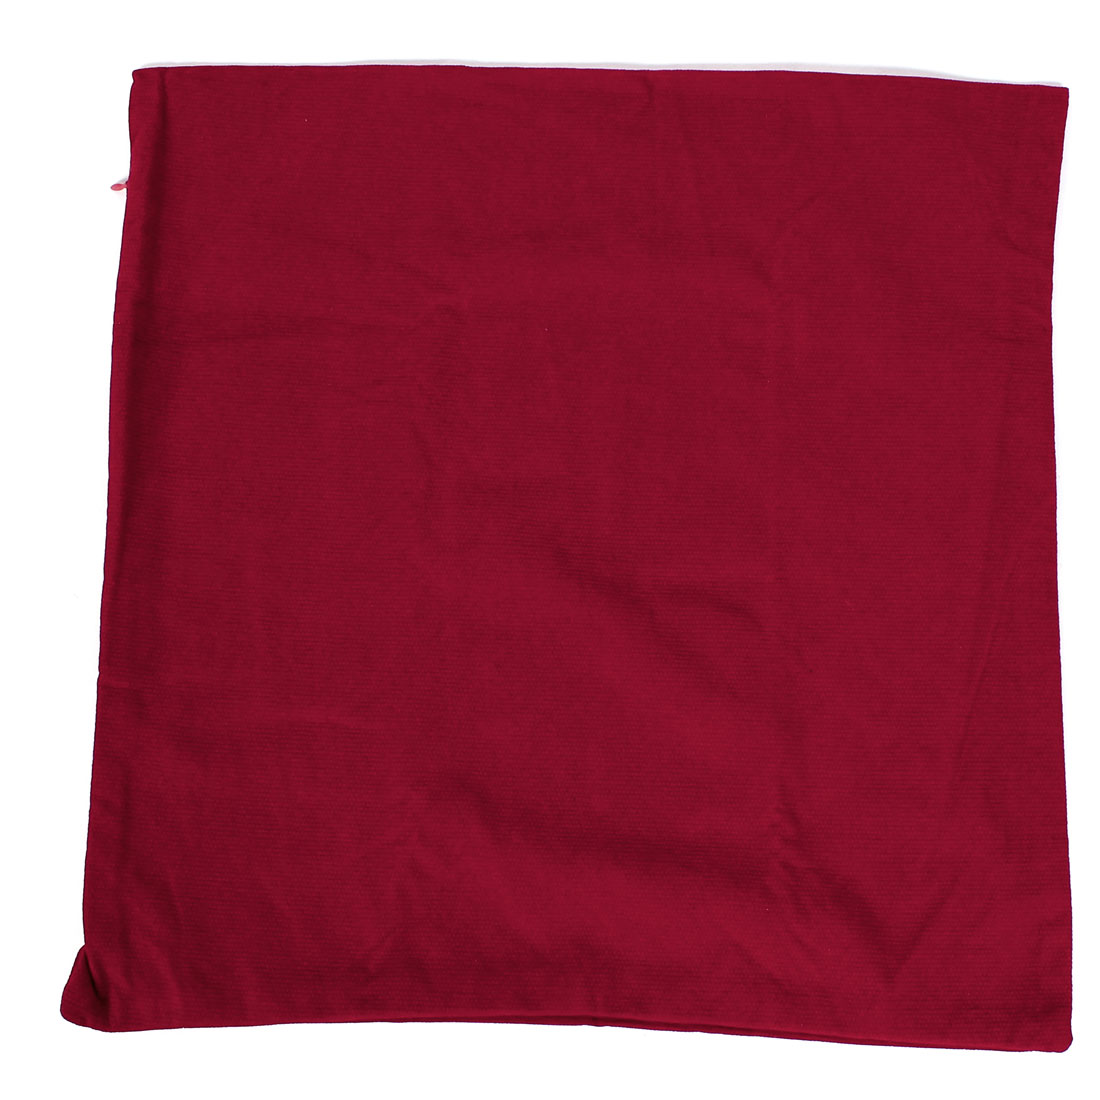 Sofa Bed Decor Square Throw Pillow Cushion Case Cover Pillowcase Red